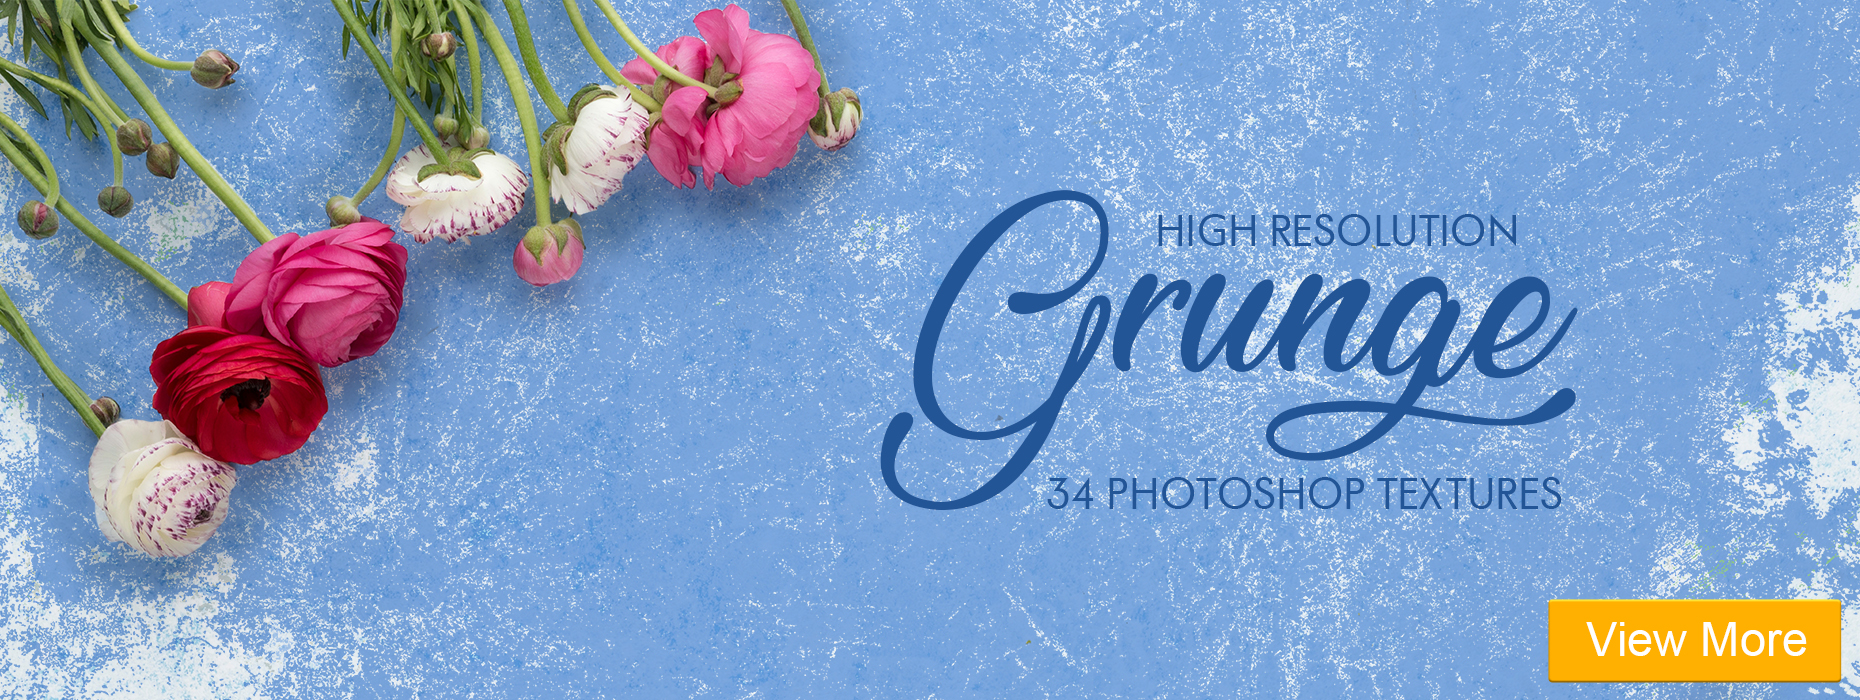 free grunge texture photoshop free lightroom presets wedding banner vintage love couple